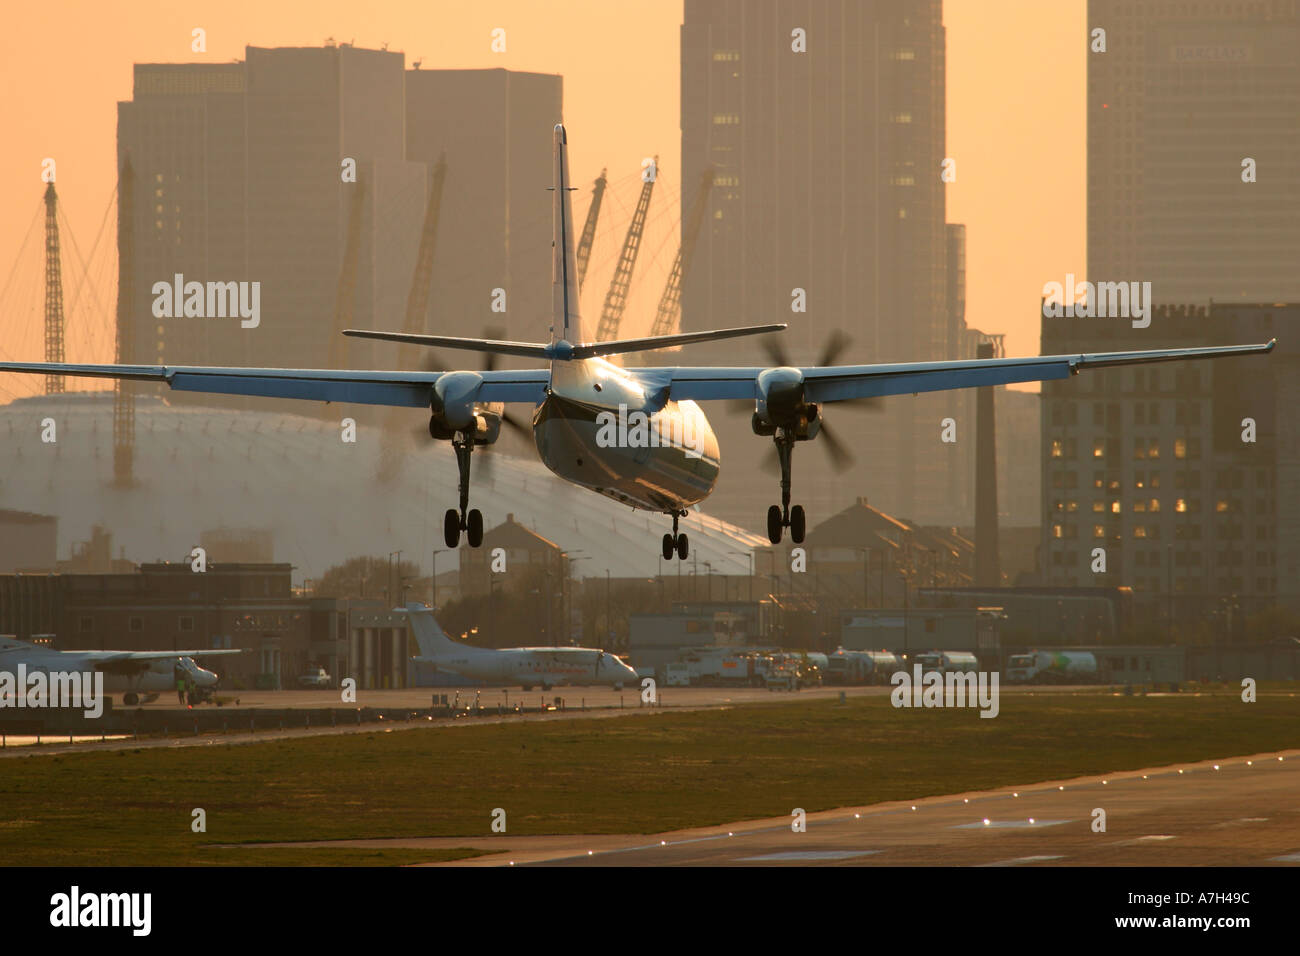 Fokker 50 KLM UK Cityhopper London City Airport Millenium Dome in the background - Stock Image